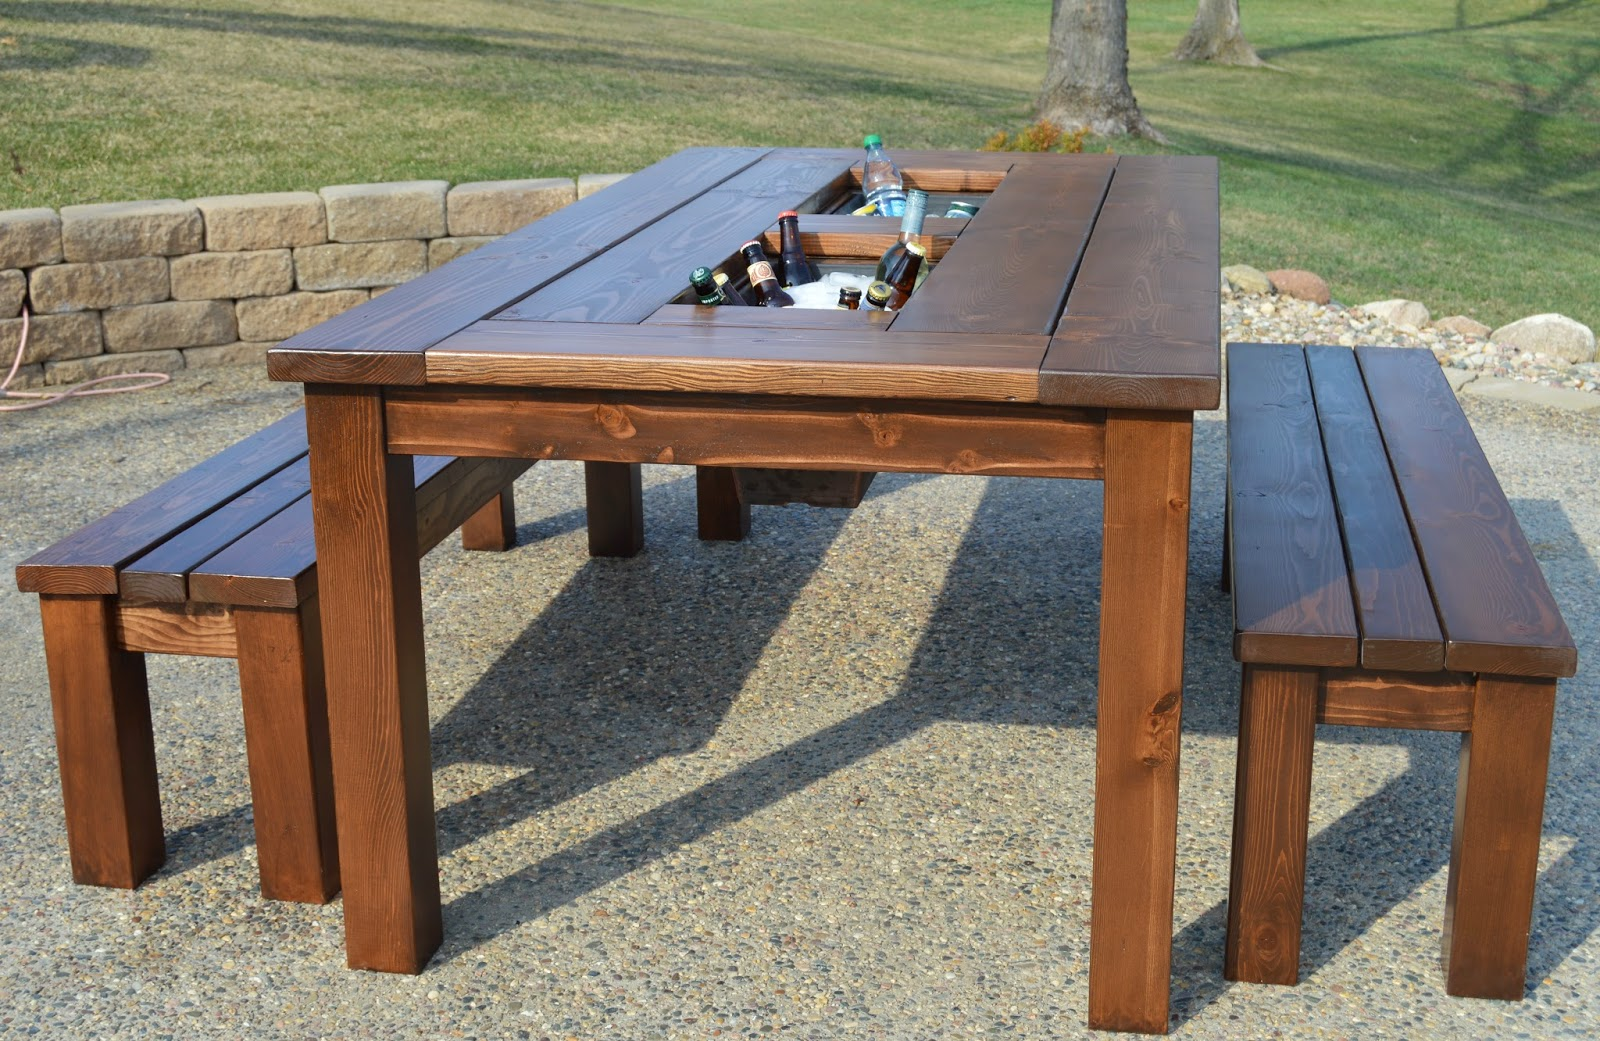 ... our blog for detailed plans to build matching benches for the table